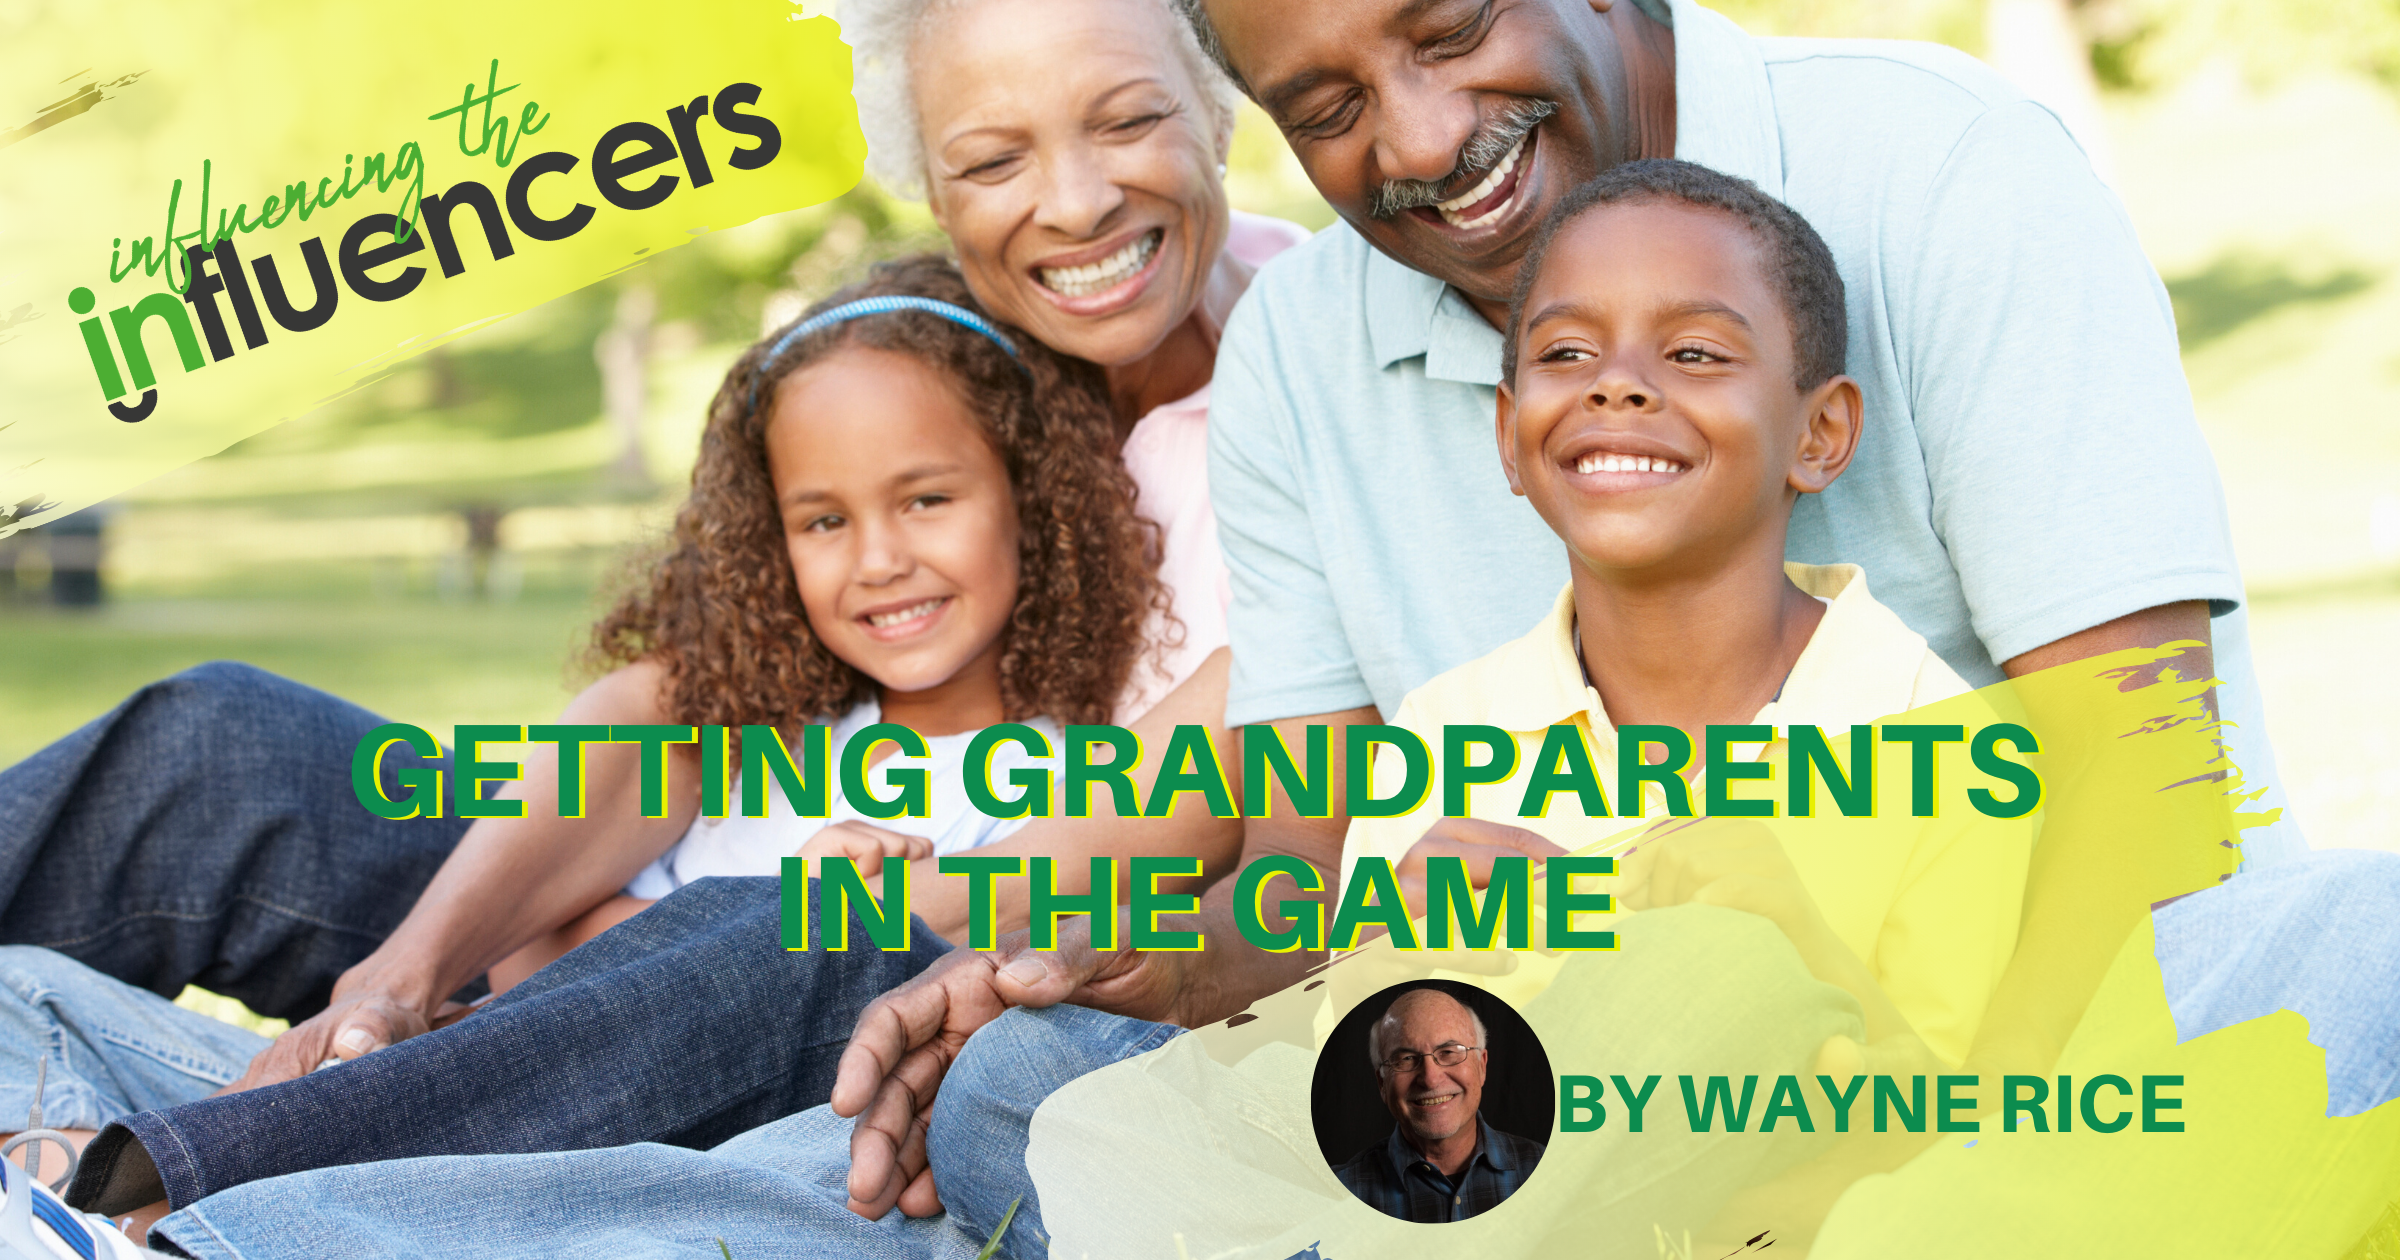 Influencing The Influencers: Getting Grandparents In The Game